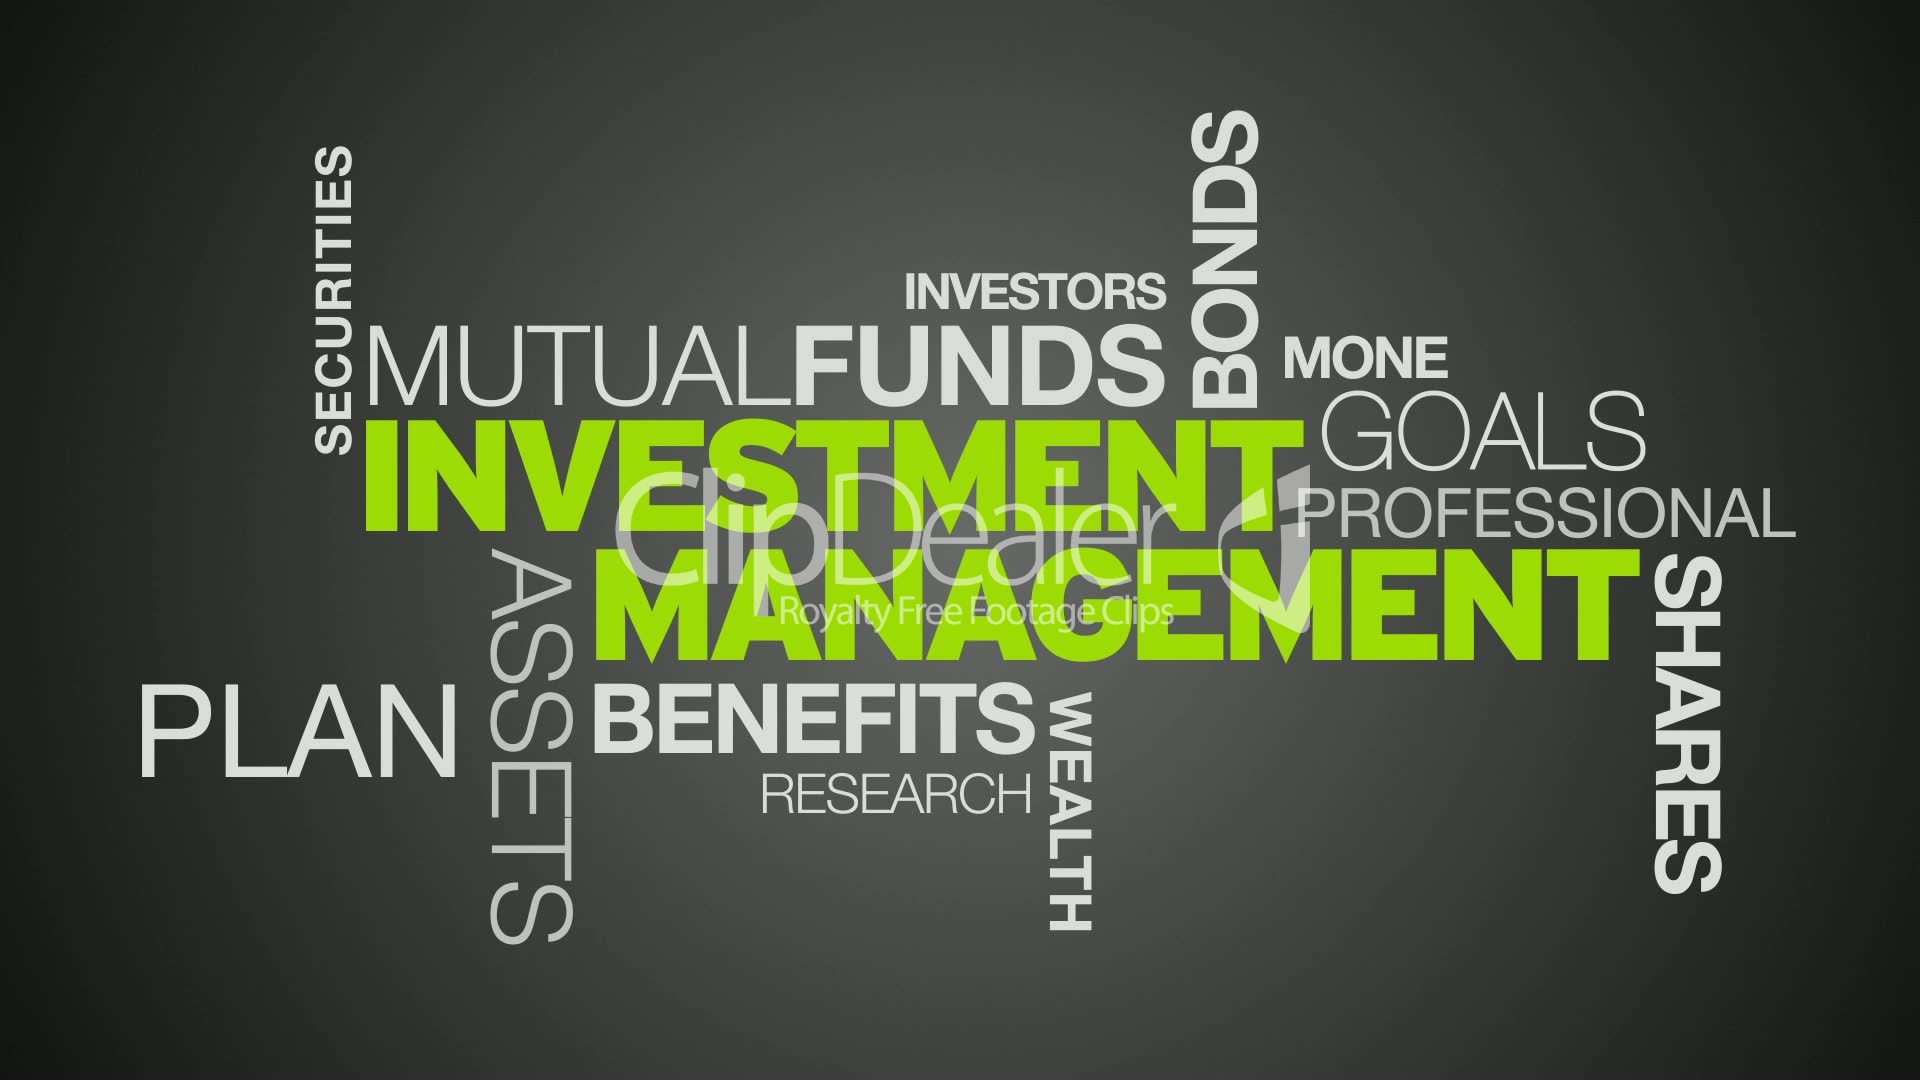 Spanish word investment management investment company act uk